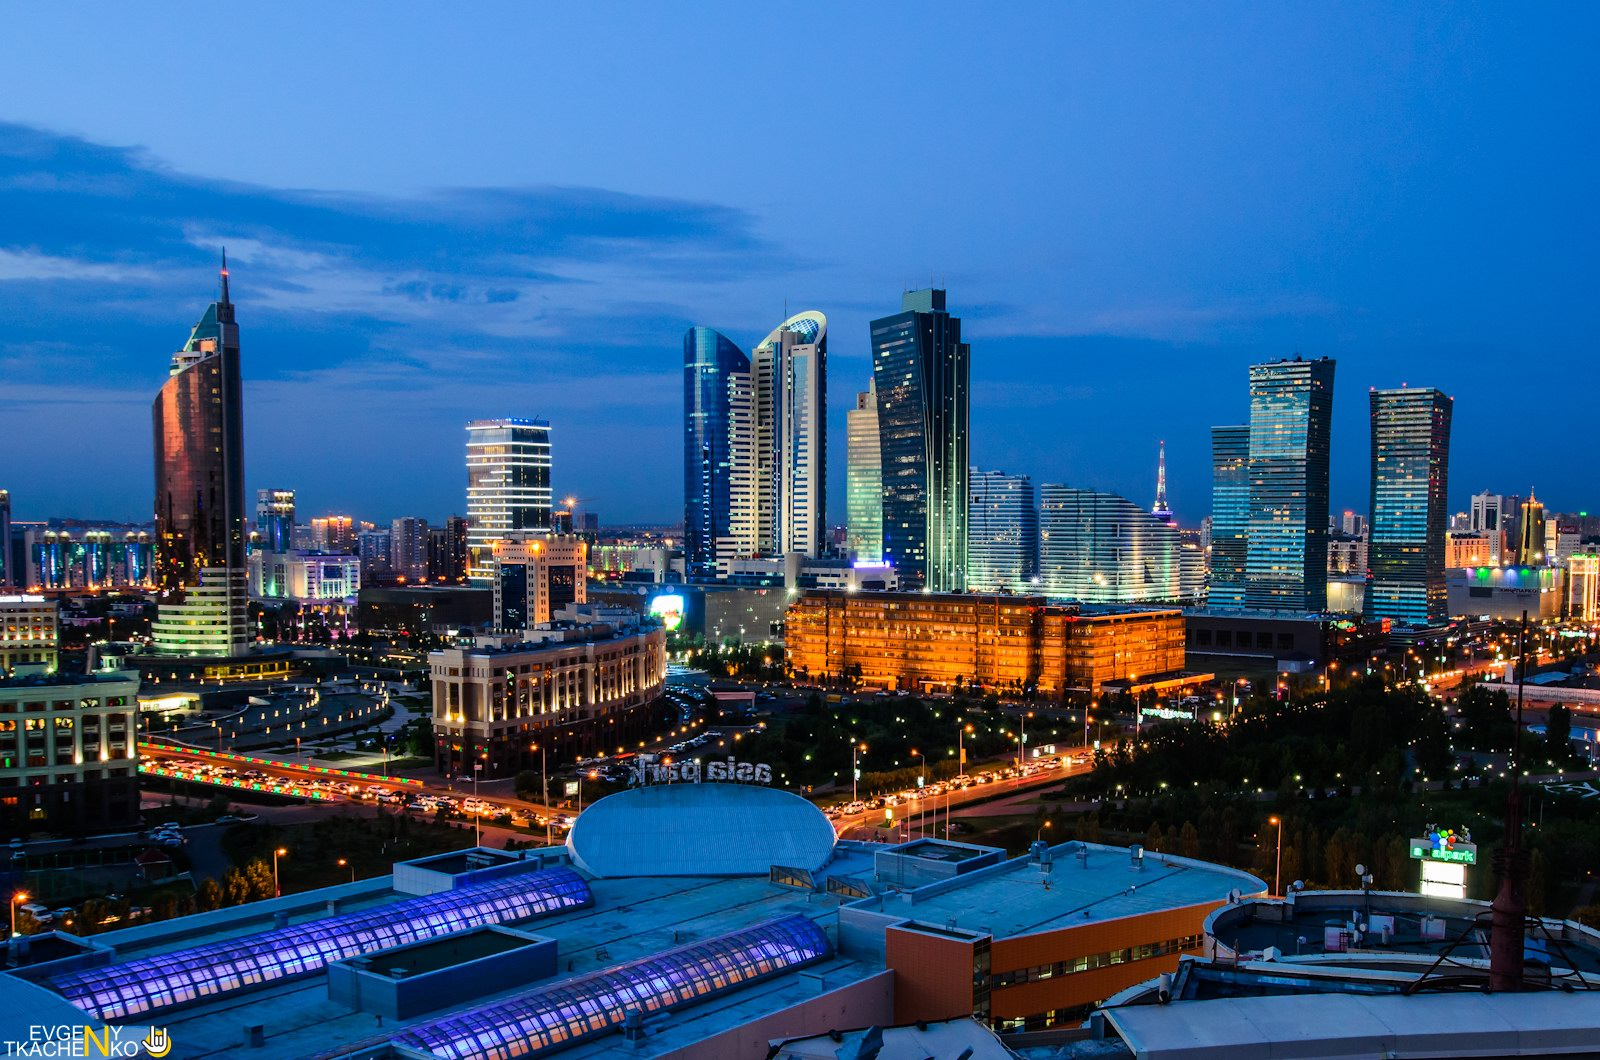 astana-at-night-kazakhstan-2.jpg